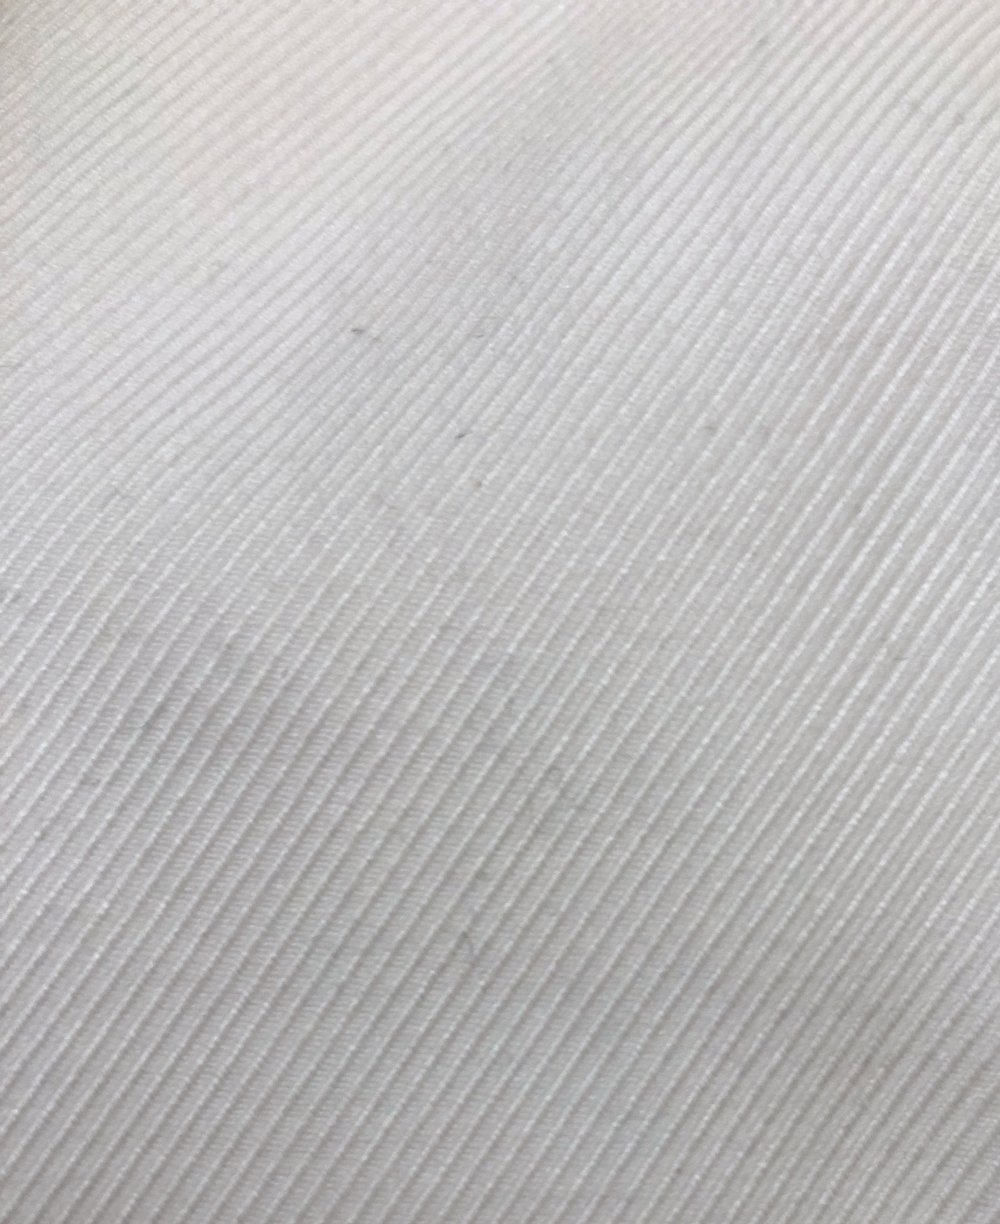 A close-up of that luxurious white twill